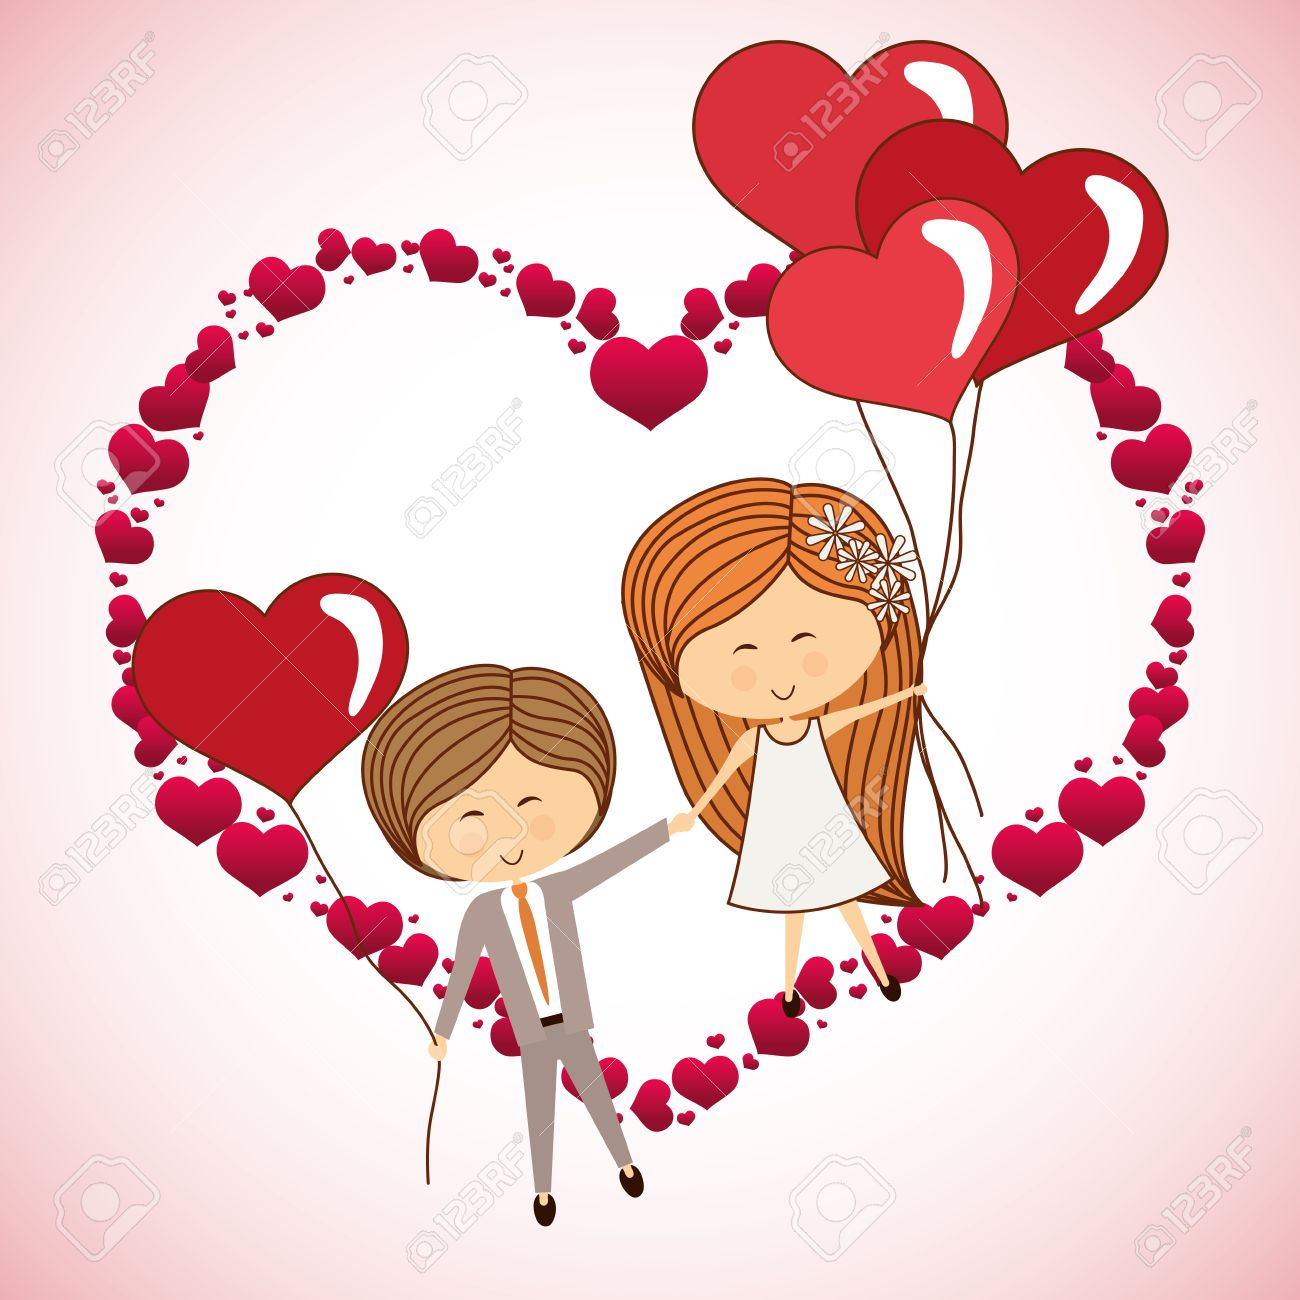 202d63f29 love concept with heart and cartoon couple design, vector illustration  Stock Vector - 44613835